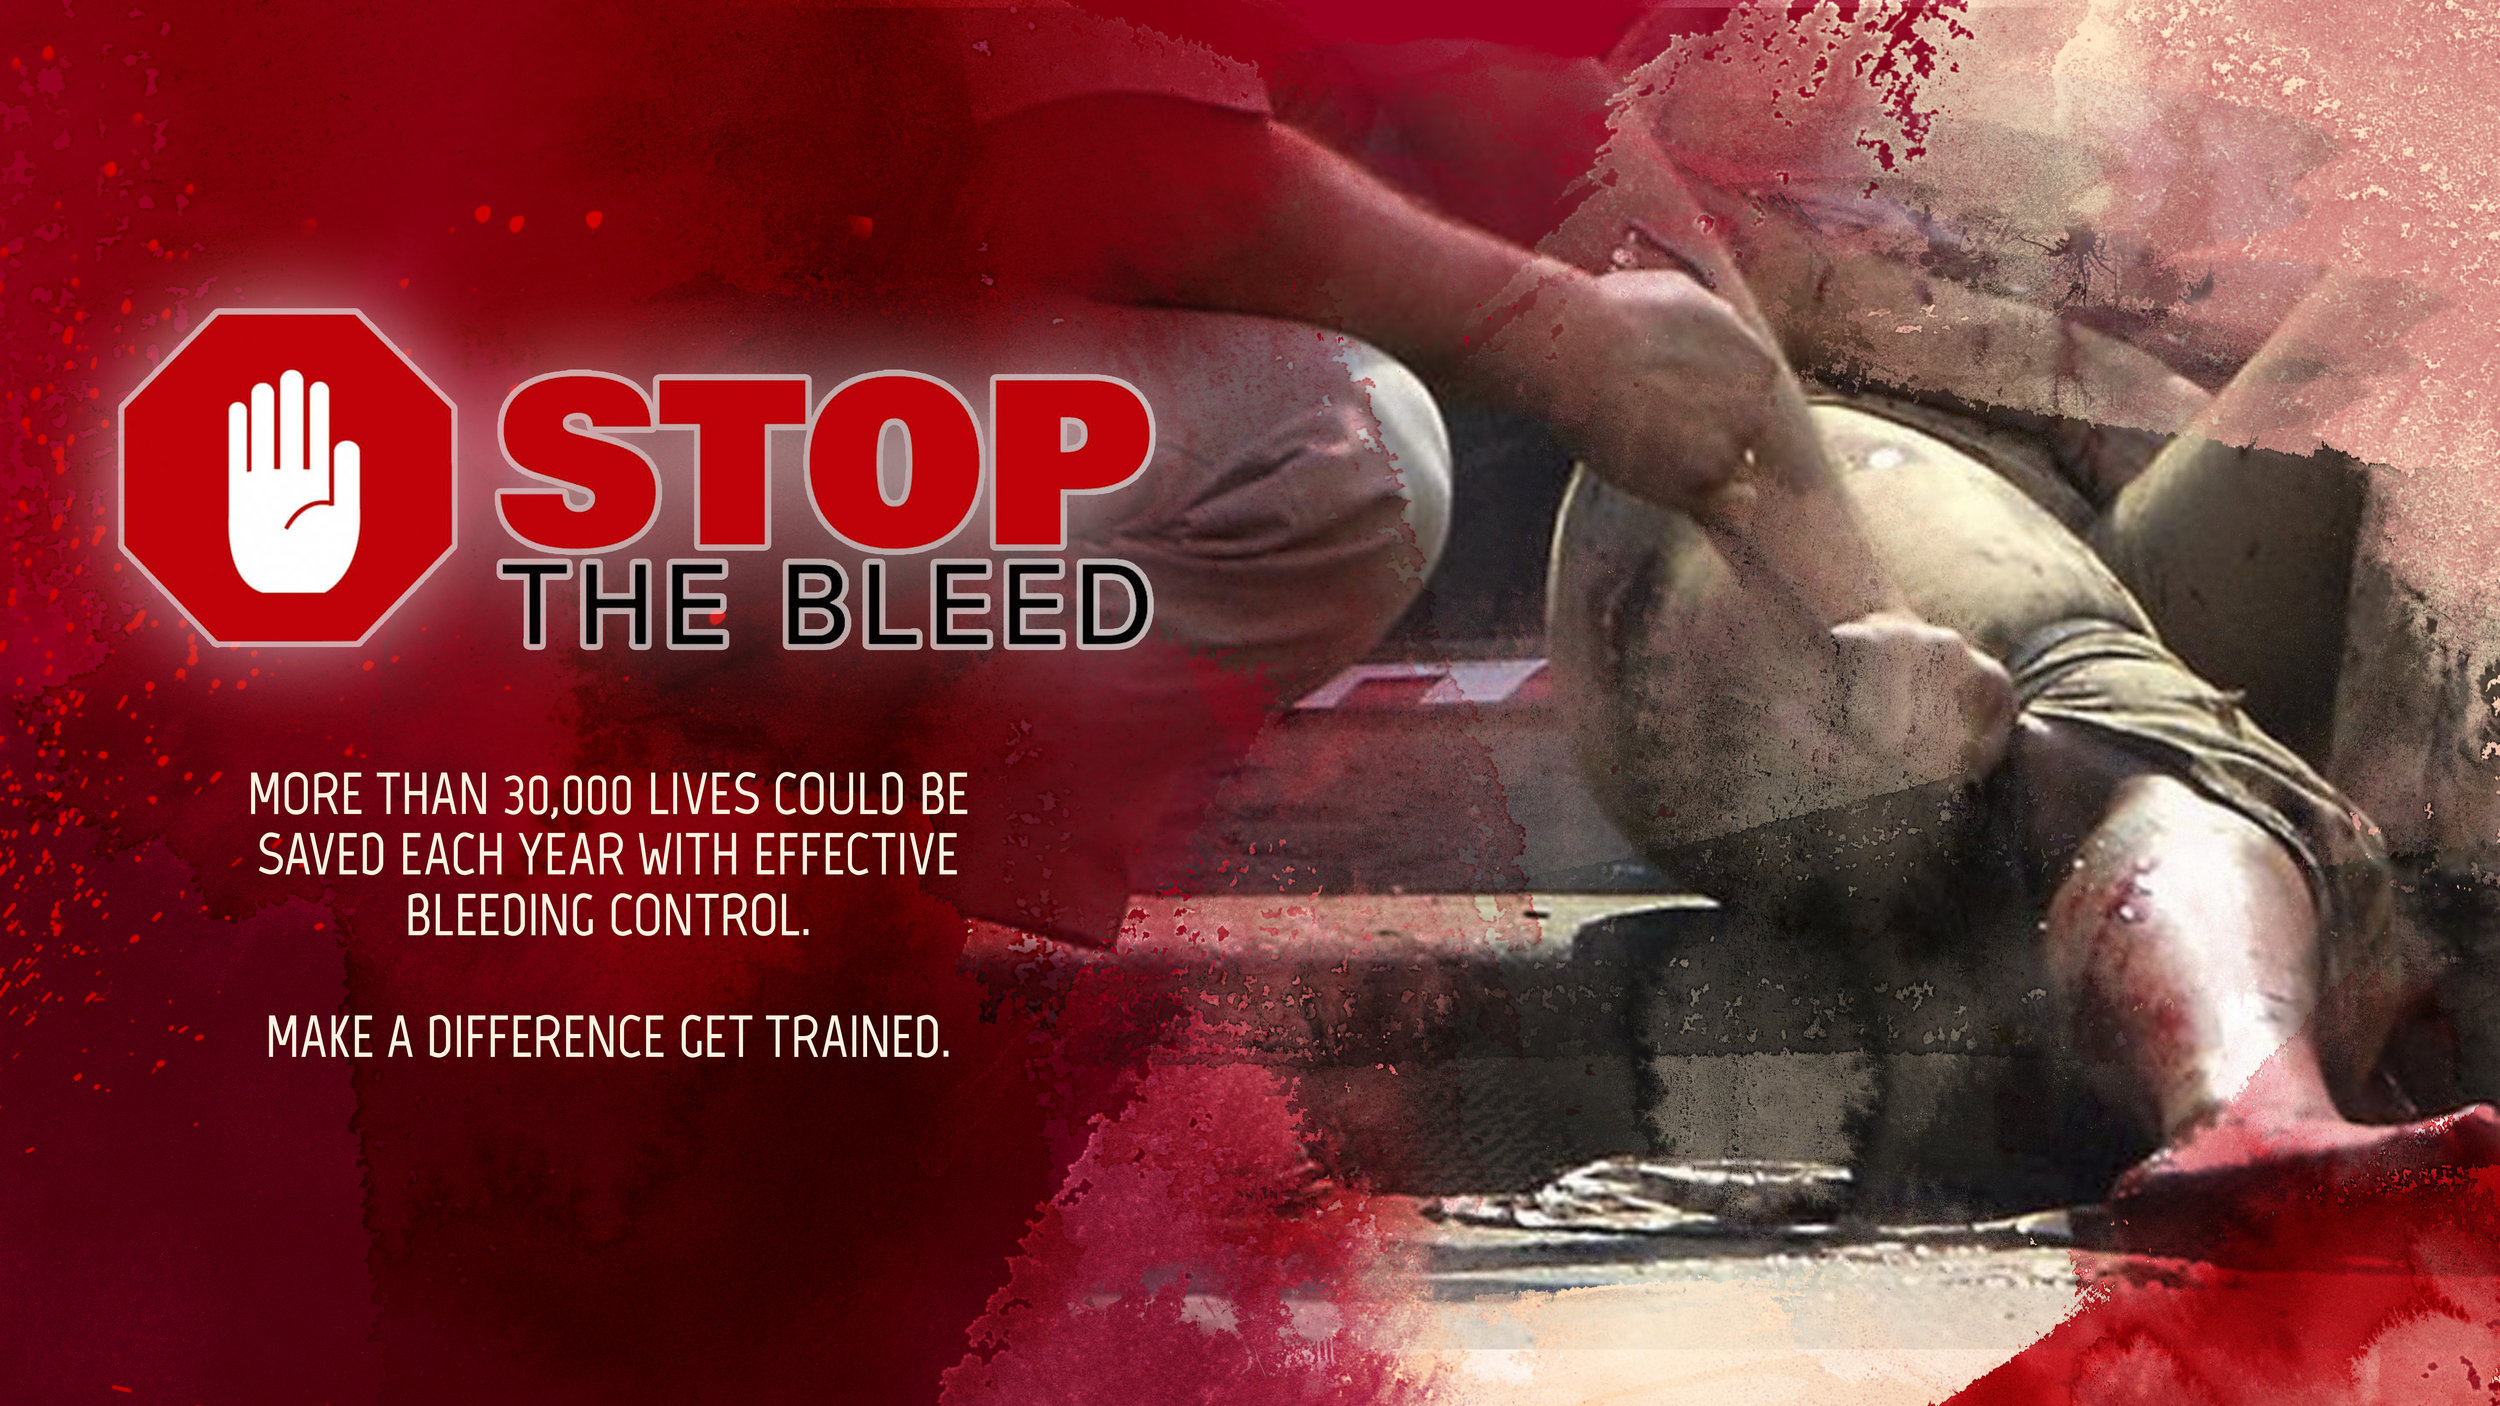 Sunday May 26th 2pm-4pm - Filling the form out below will register you for the Stop The Bleed class on Saturday January 26th. Please fill out a form for each person. There is a limit of 30 participants for the class.